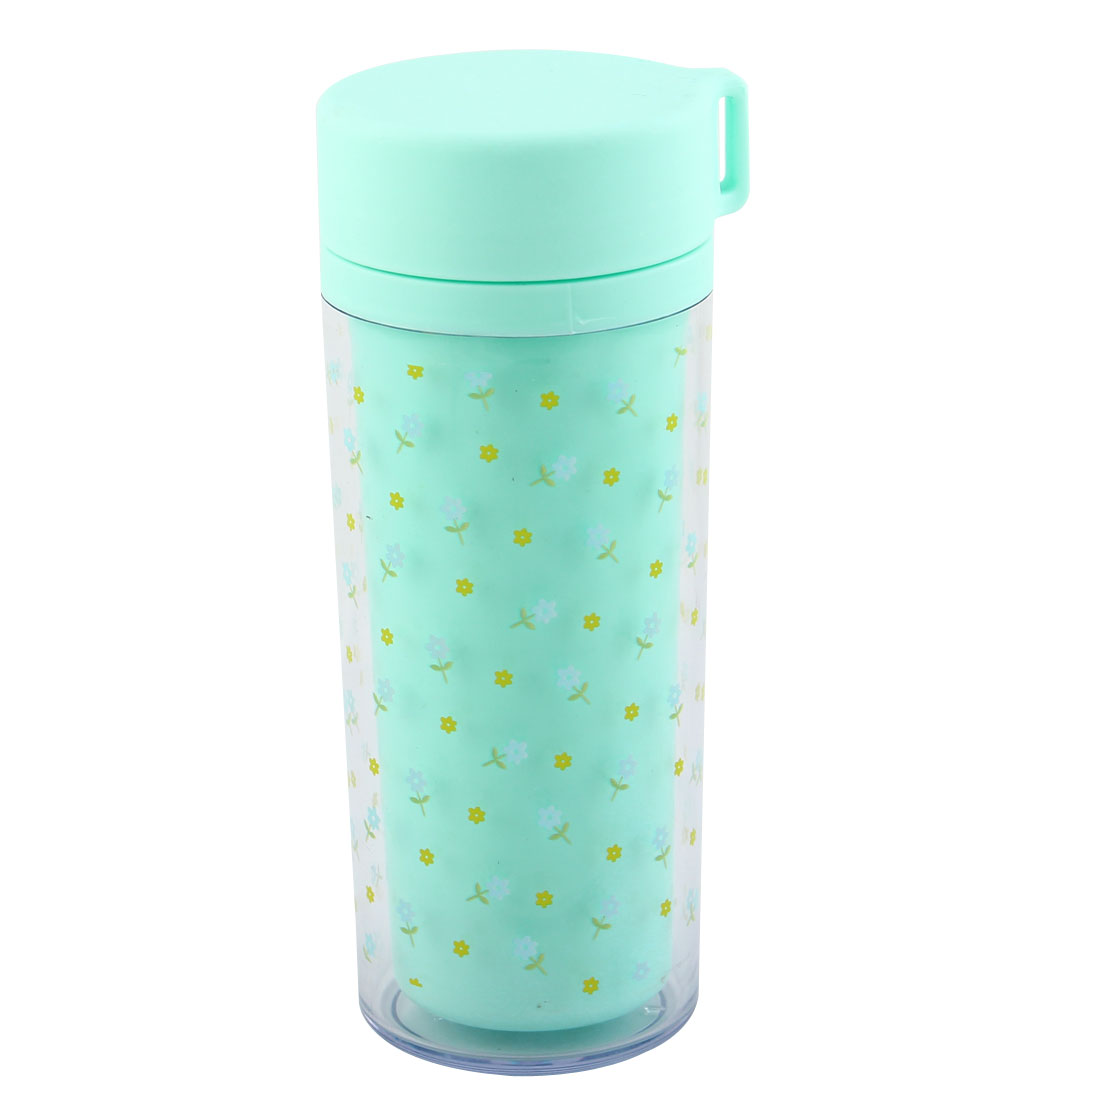 Student Plastic Floral Pattern Double Layer Water Bottle Cup Portable Sports Mug Travel Kettle Teal Blue 300ml